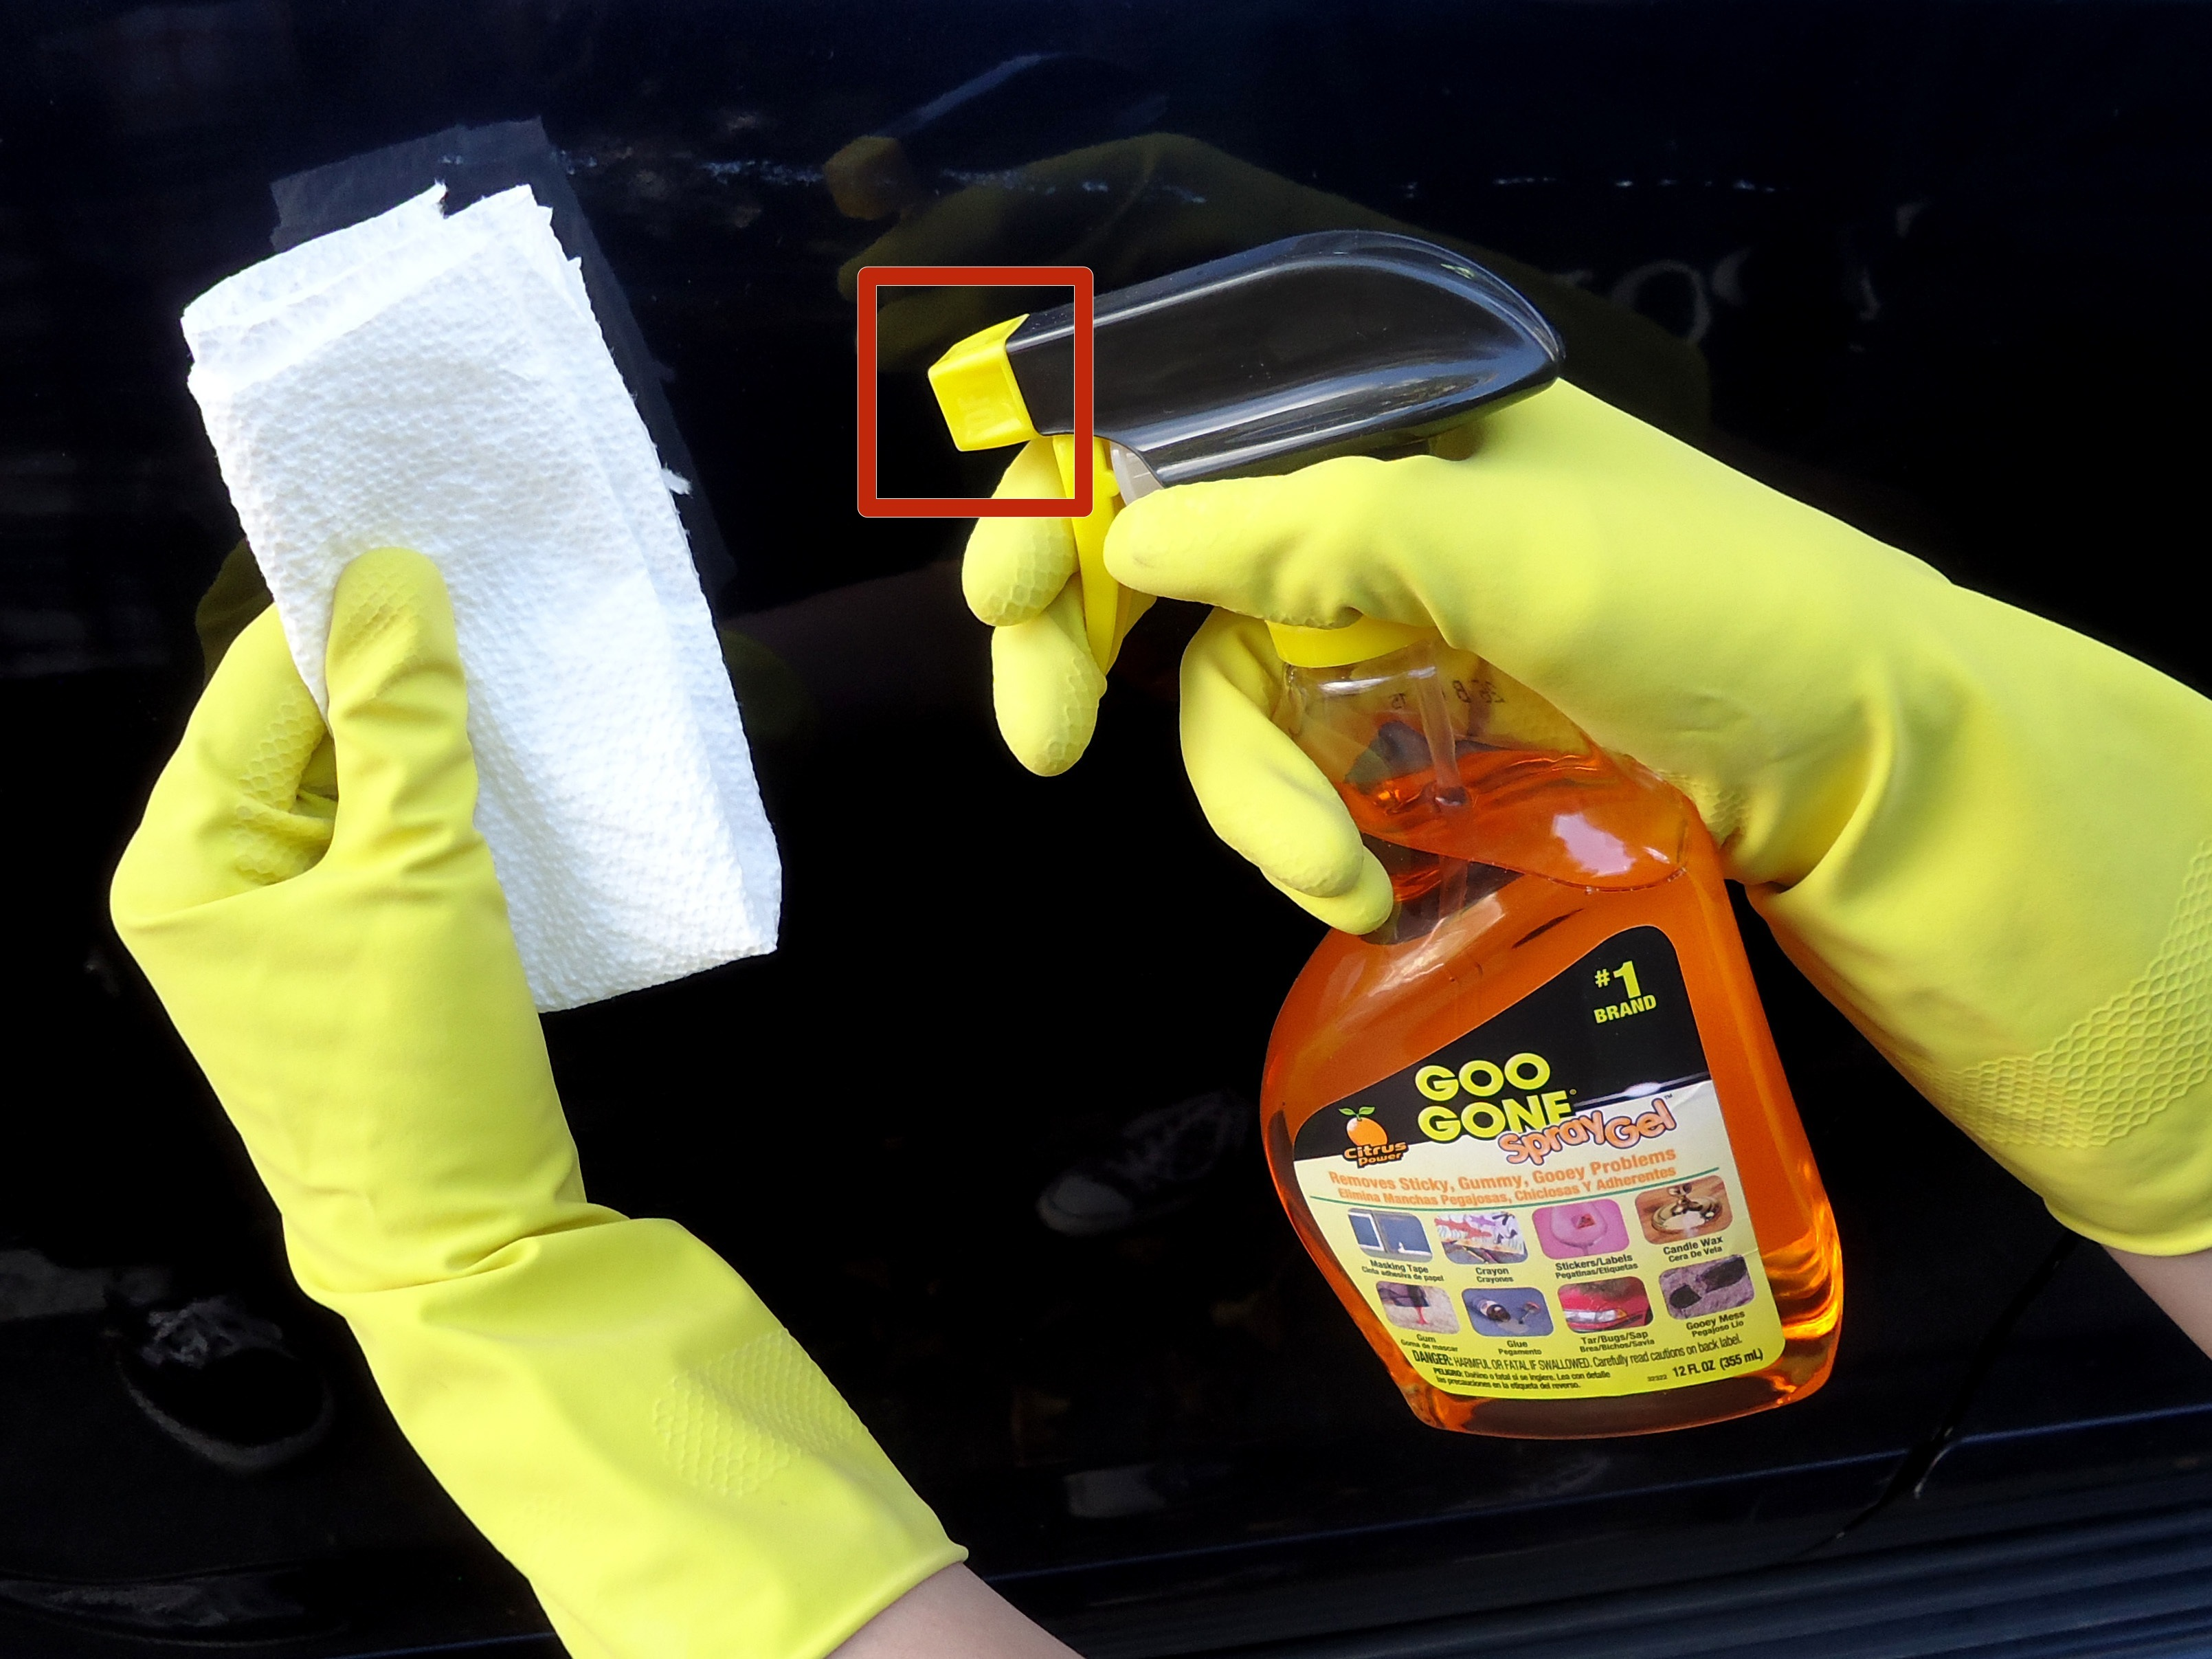 How To Get Sticker Off Car Without Ruining Paint